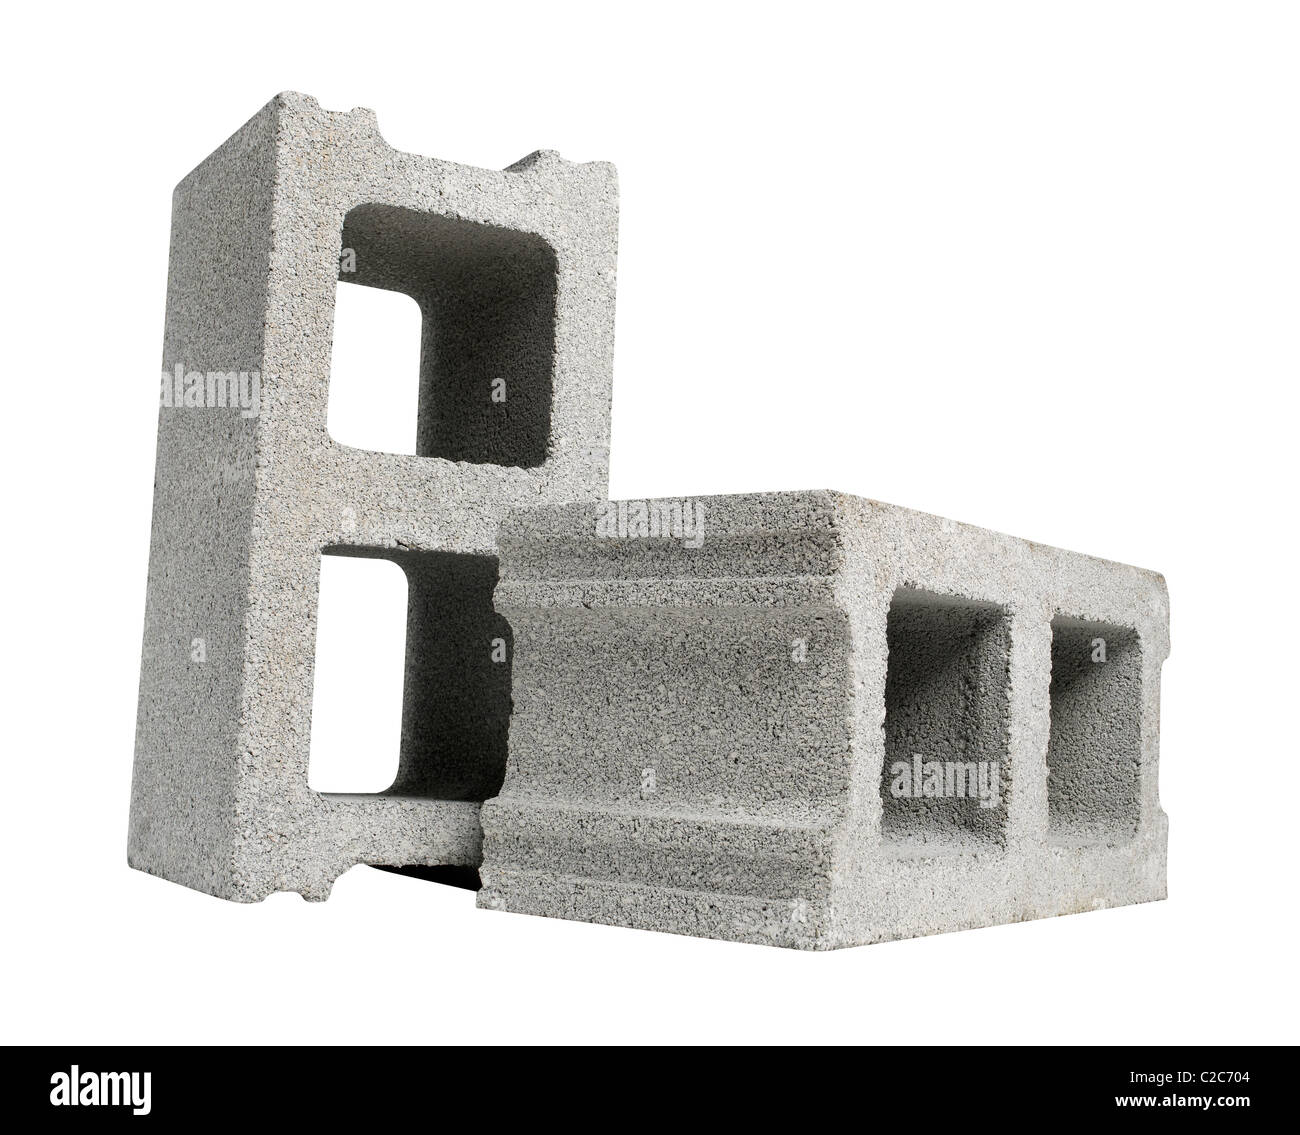 cinder blocks - Stock Image